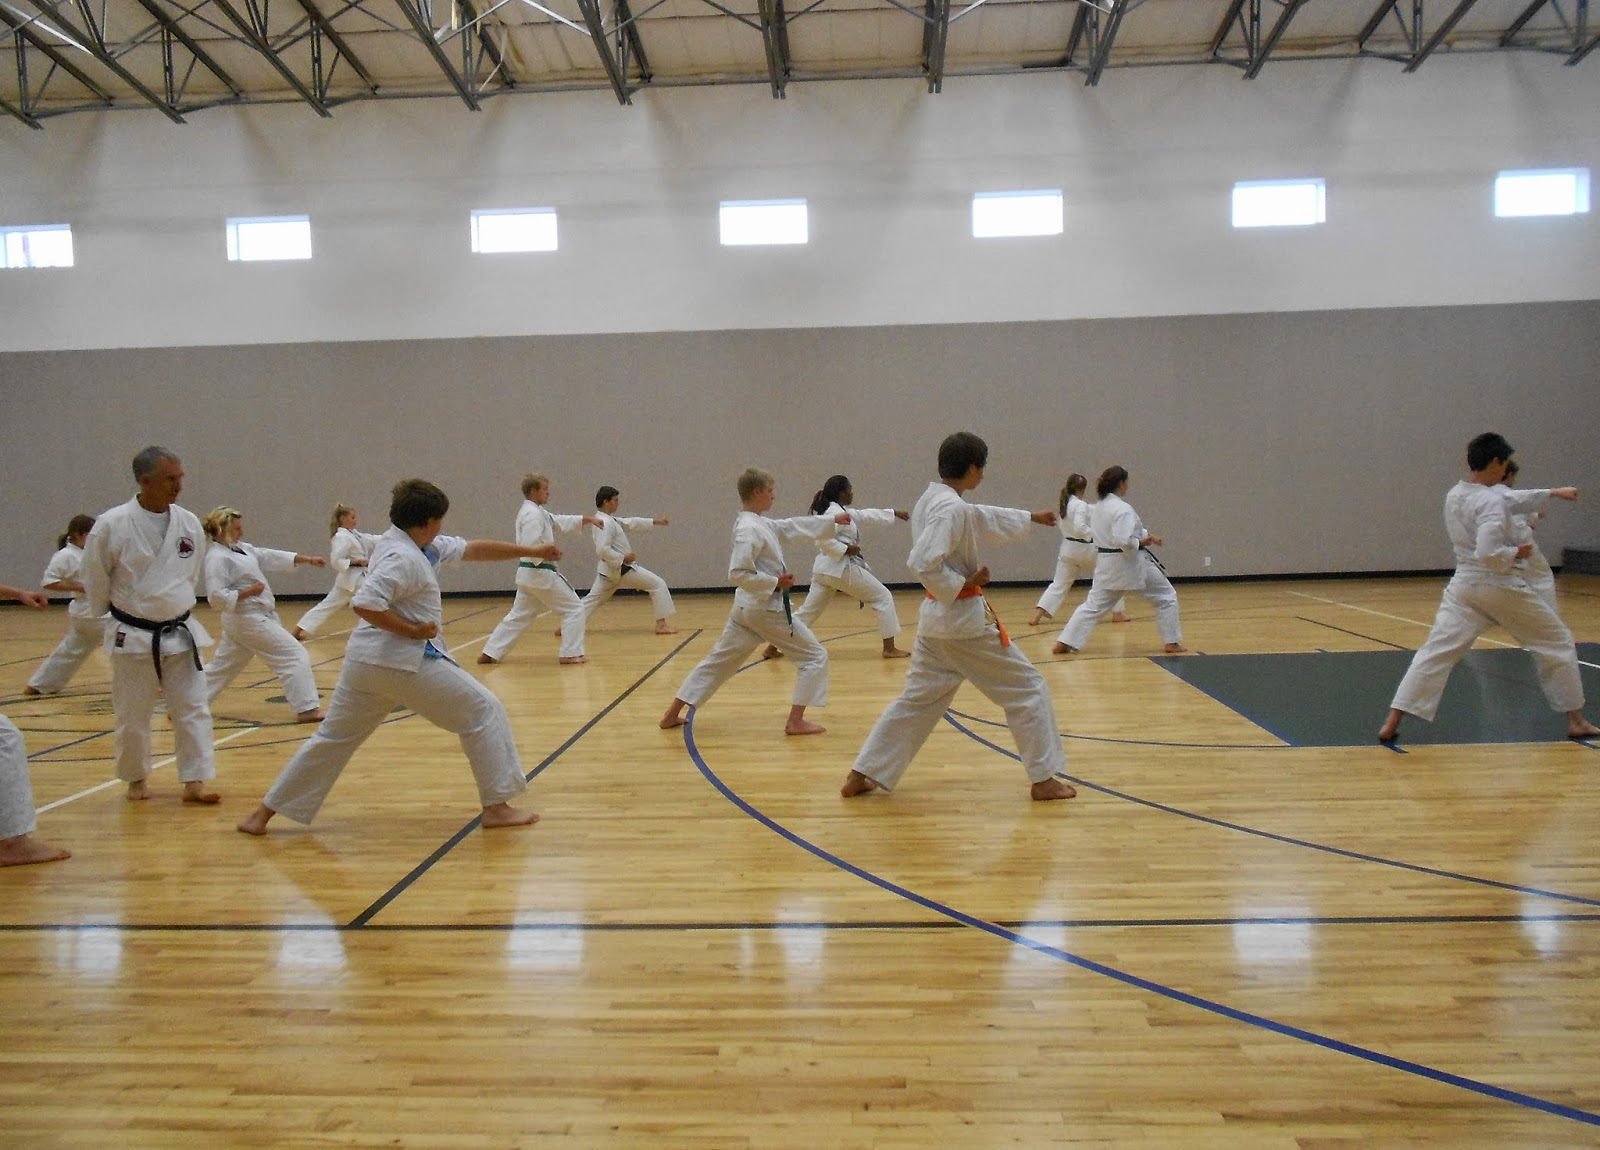 Karate_students_international_private_therapeutic_boarding_school_Cedar_Ridge_Academy